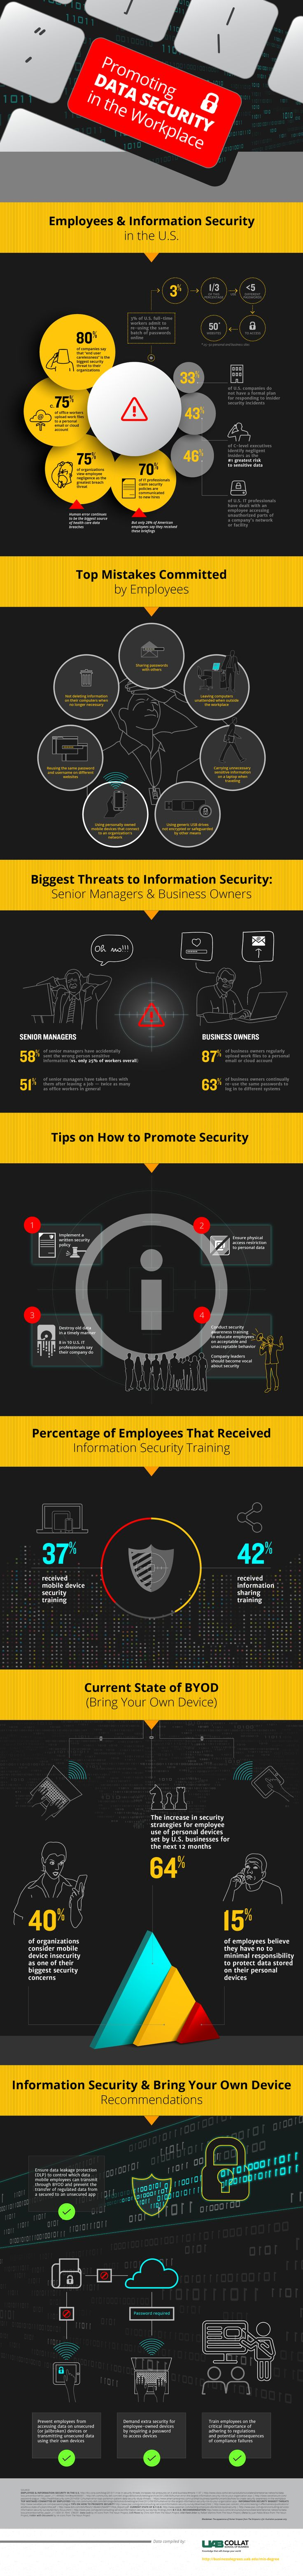 How to Improve Your Company's Data Security (Infographic)   Inc.com